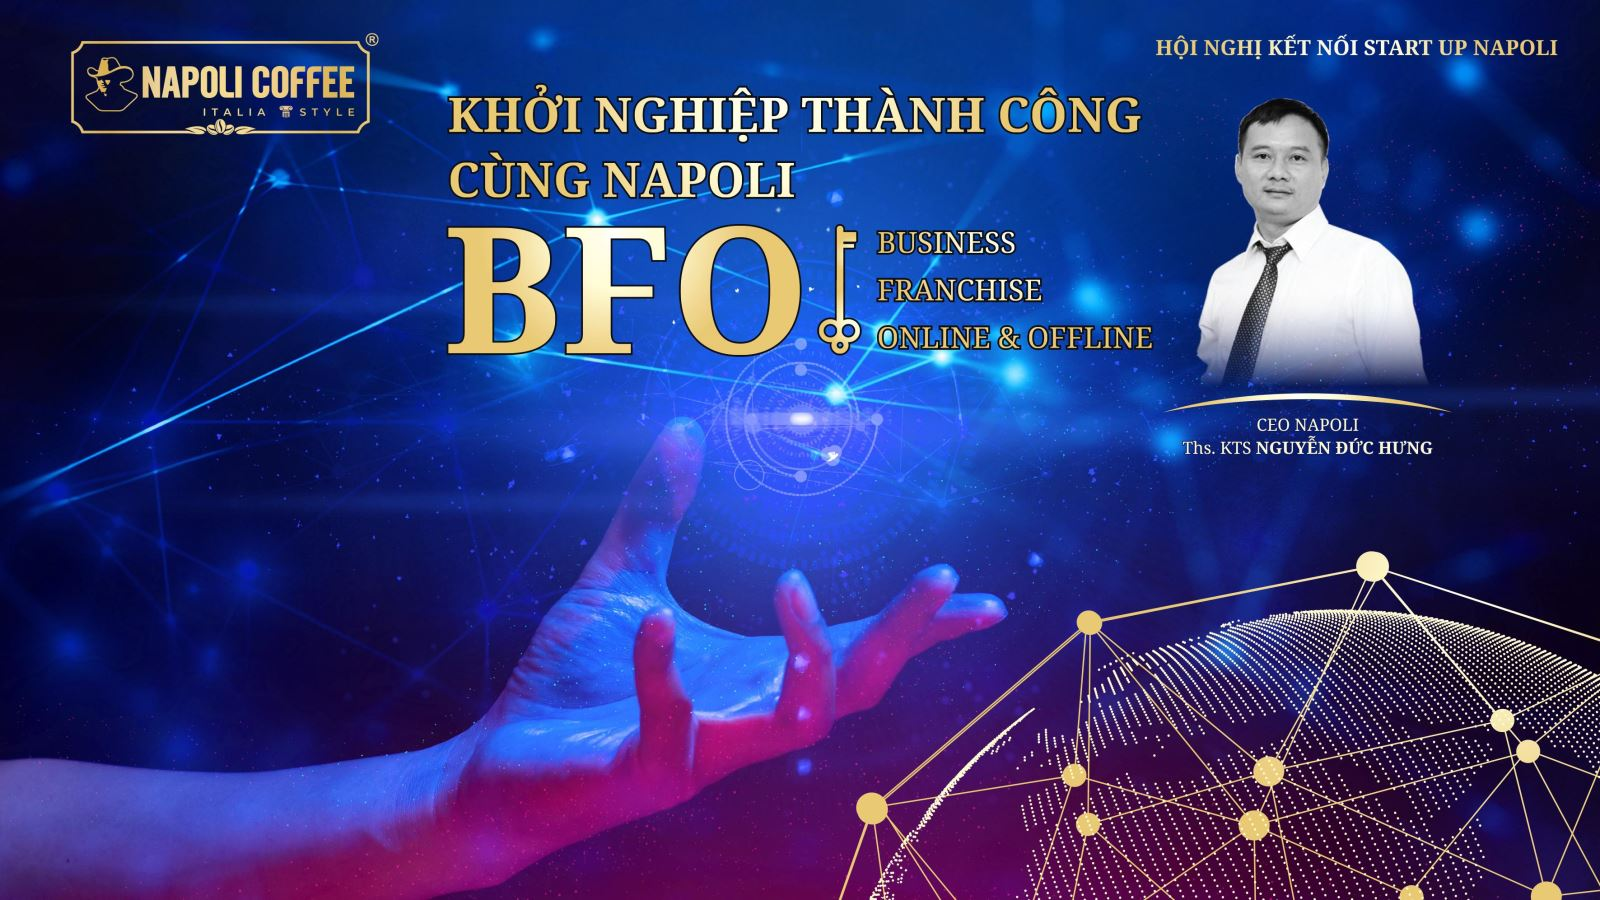 tin-tuc-napoli-khoi-nghiep-thanh-cong-cung-napoli-bfo-(business-franchise-online-offline)